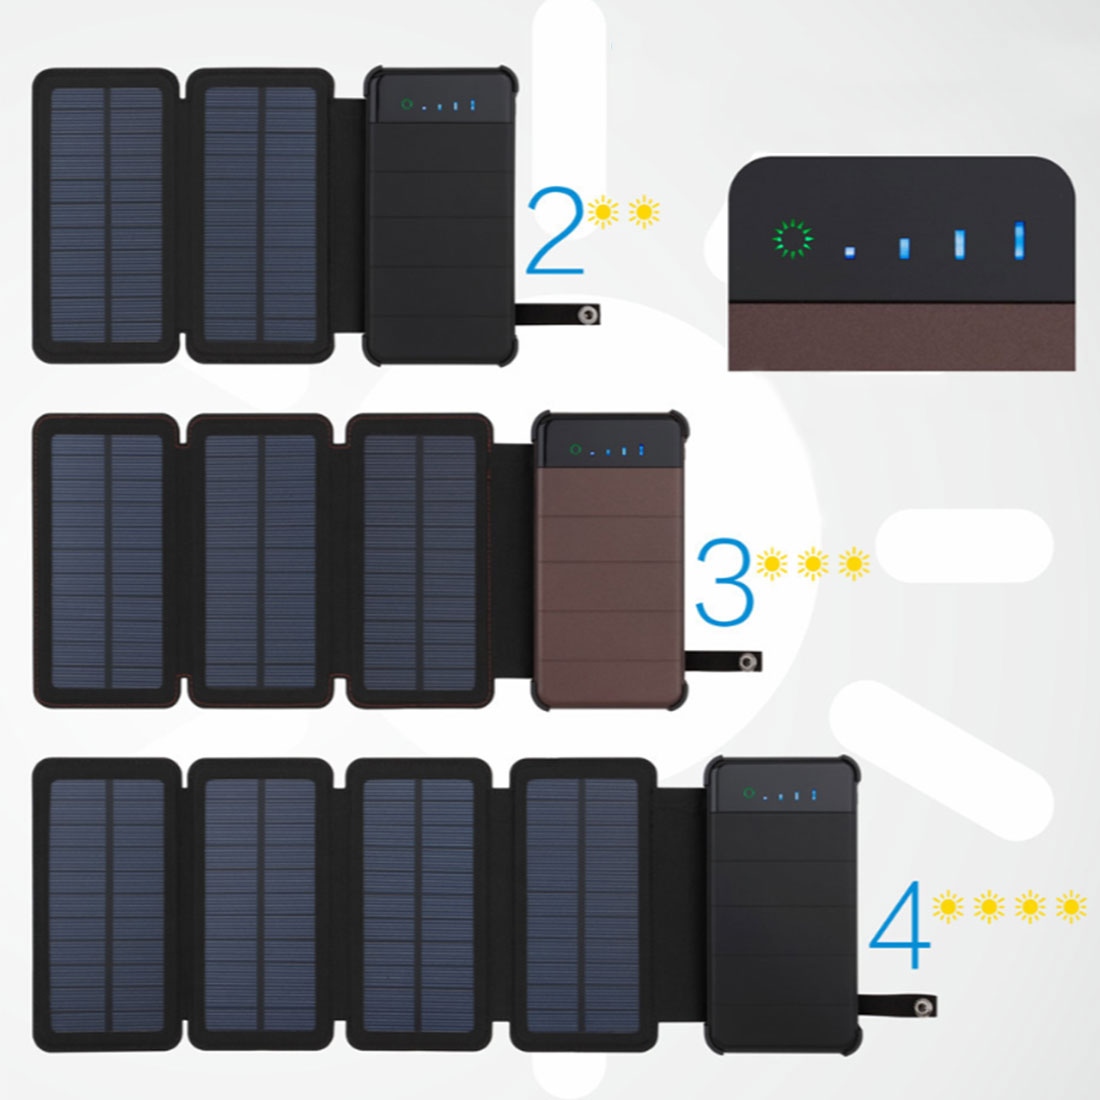 Solar Panel Sun power Battery Power Bank 10000mAh Universal Portable Mobile Phone Power Charger Can Remove External Battery dual usb output universal thunder power bank portable external battery emergency charger 13000mah yb651 yoobao for electronics